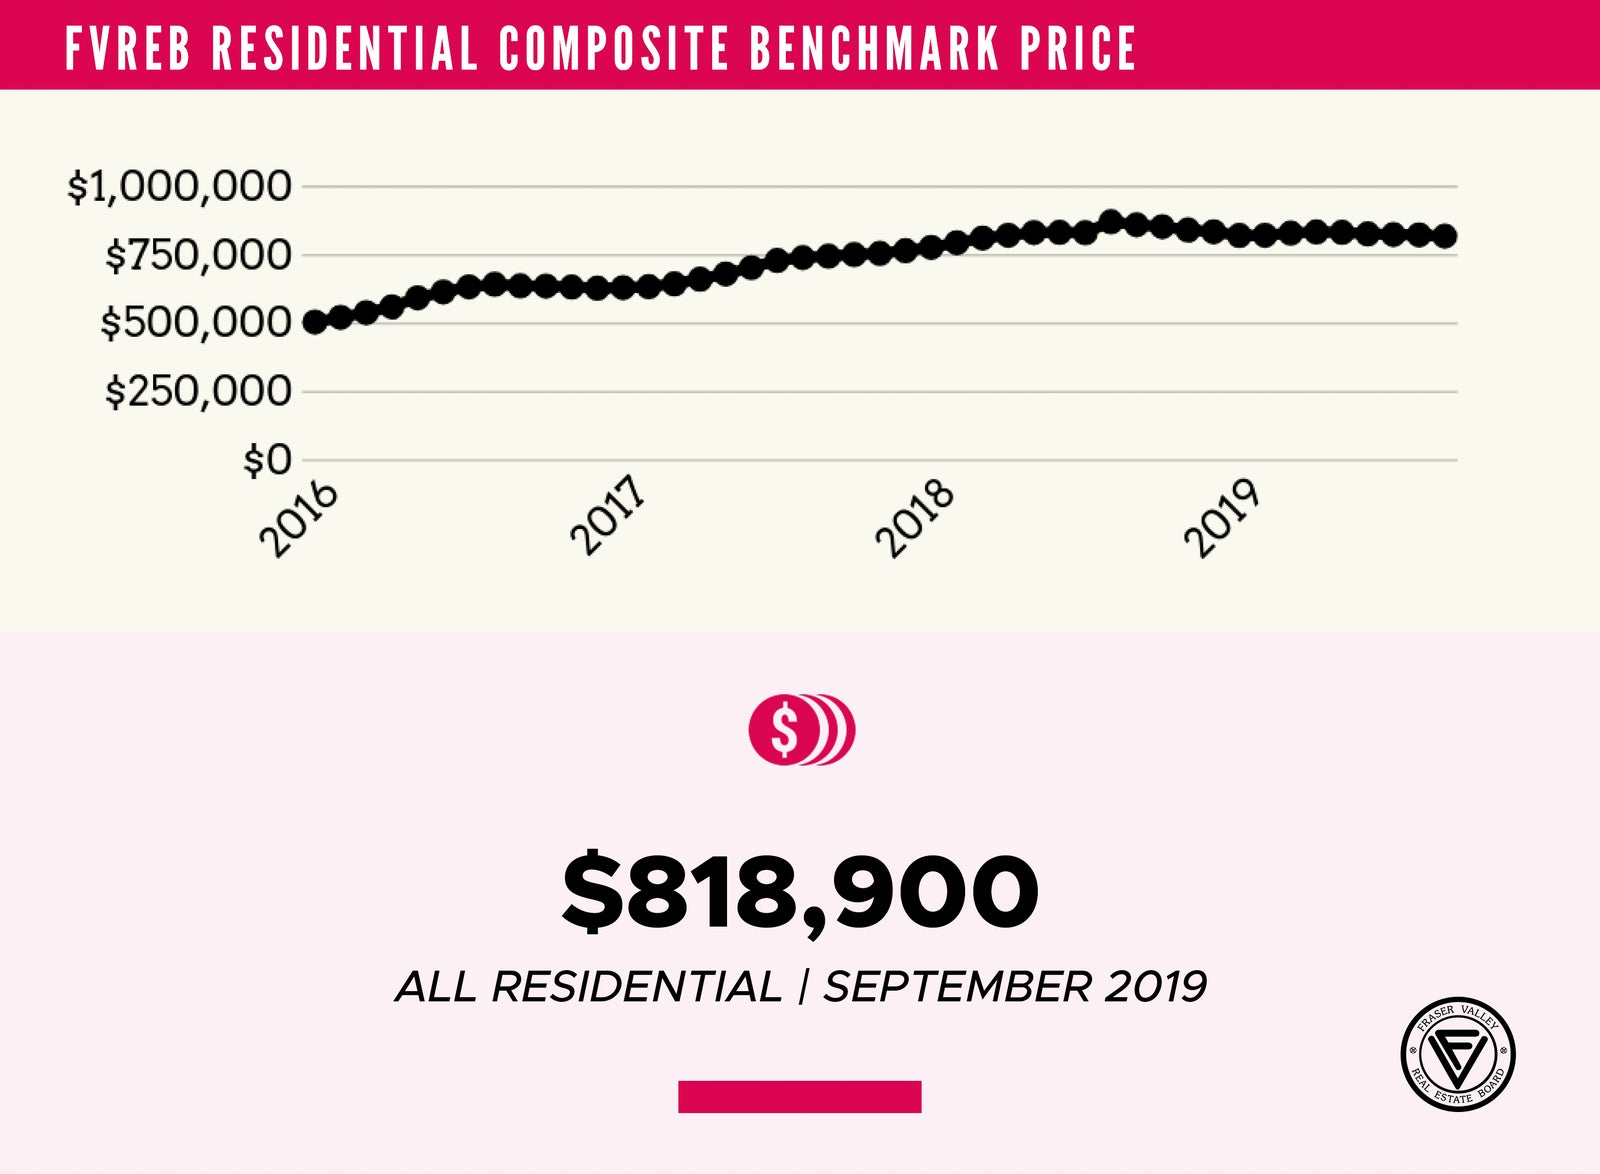 benchmark price - September 2019